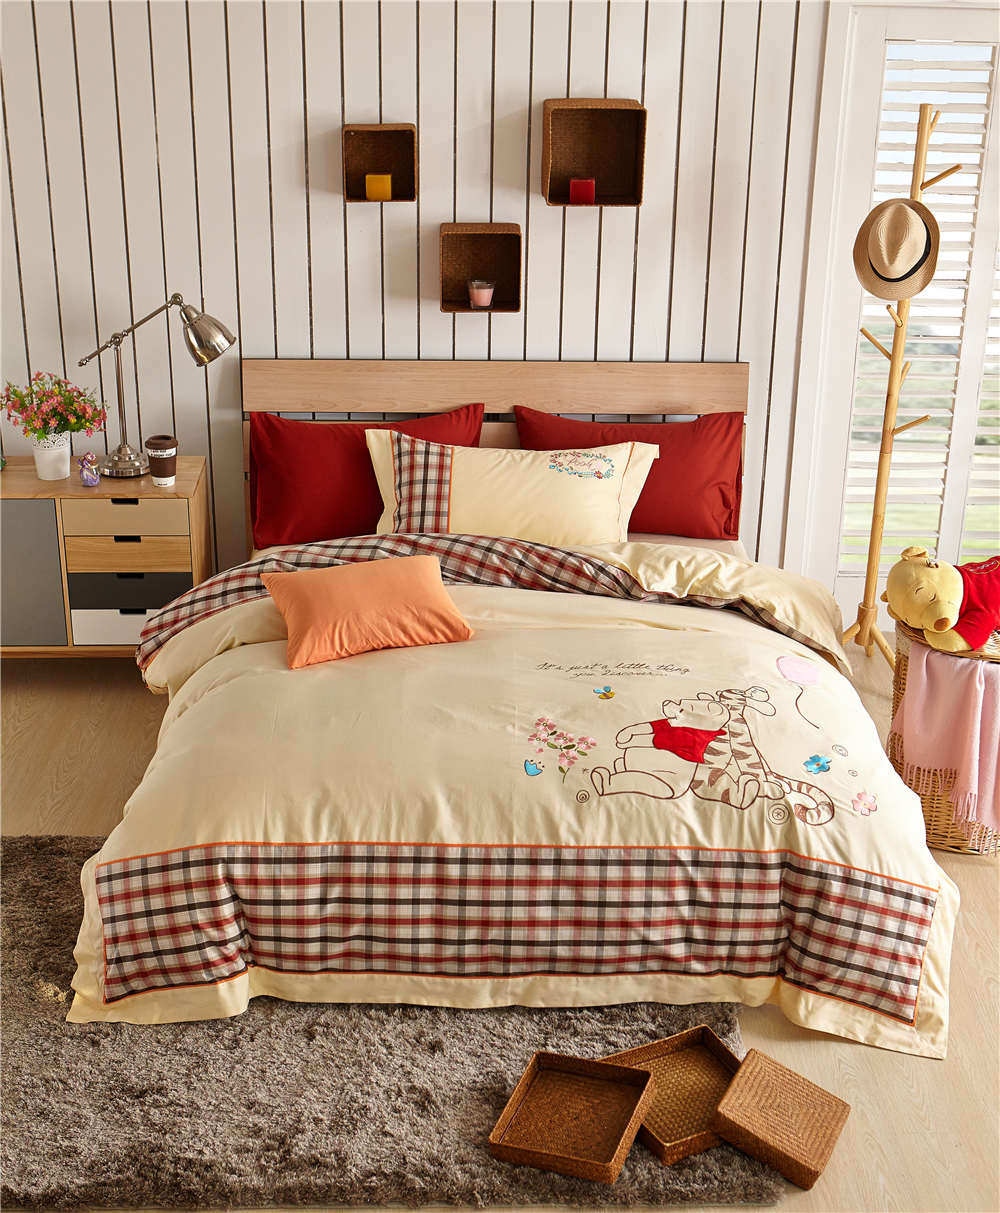 Winnie the Pooh Plaid Bedding Sets Children Bedspreads Bed Covers Sheets Applique Embroidery Cotton Woven Single Twin Full Queen